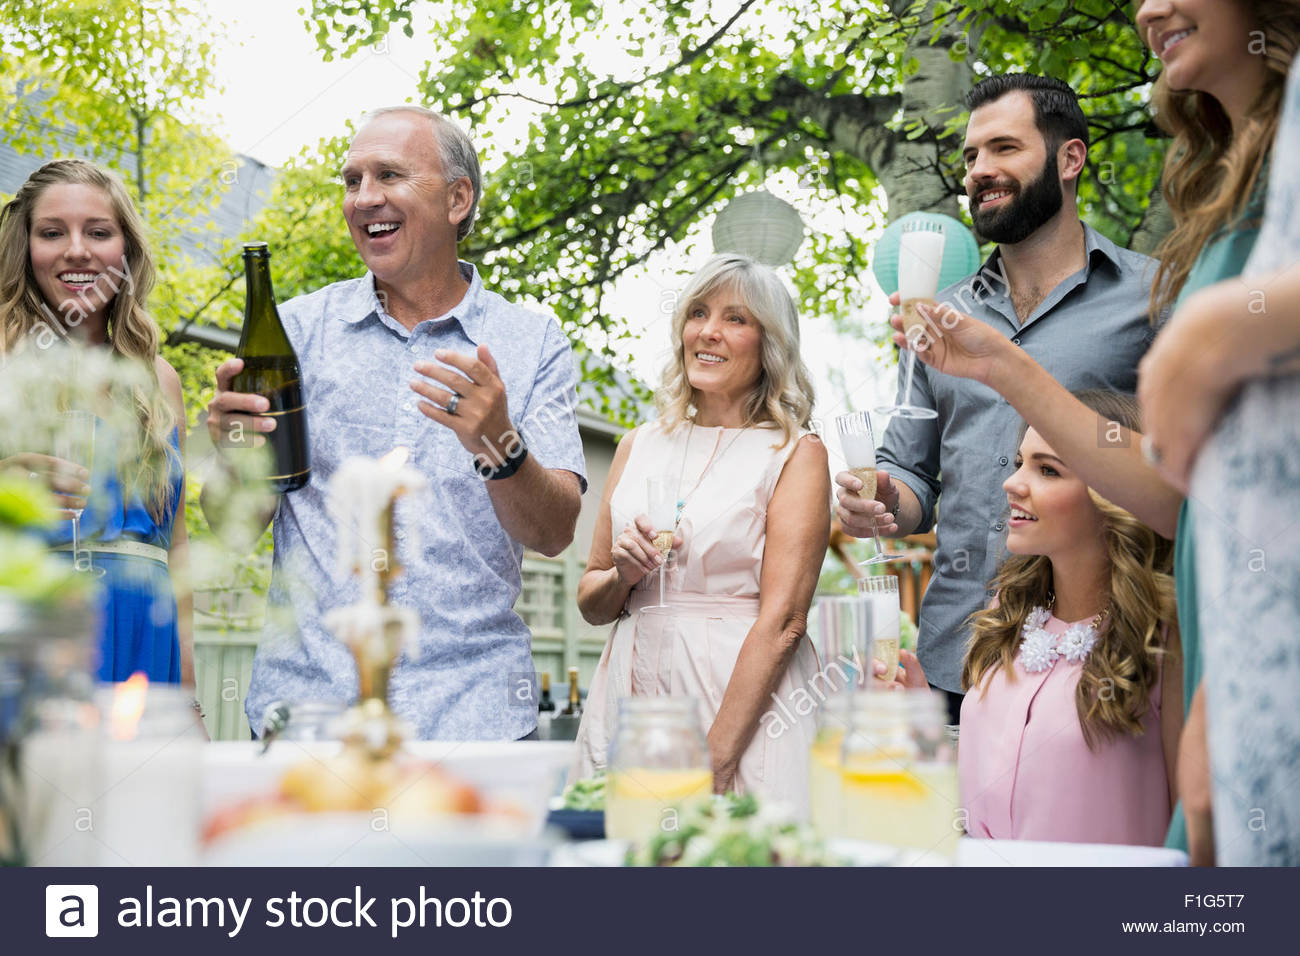 Family drinking celebrating with champagne at garden party - Stock Image